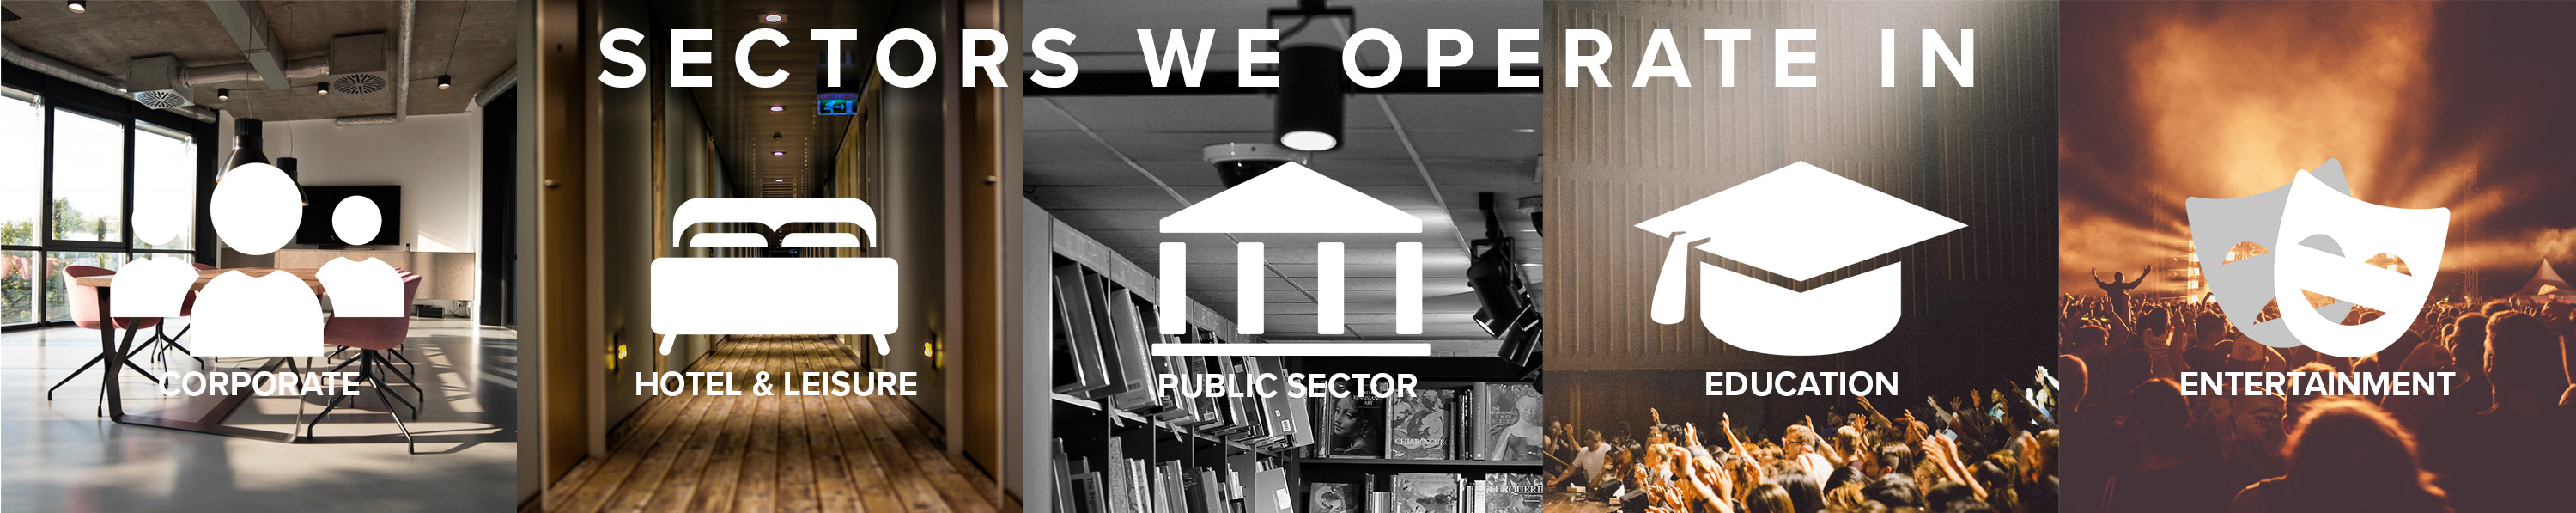 R&W Sectors we operate in, business, hotel and leisure, public sector, education and entertainment